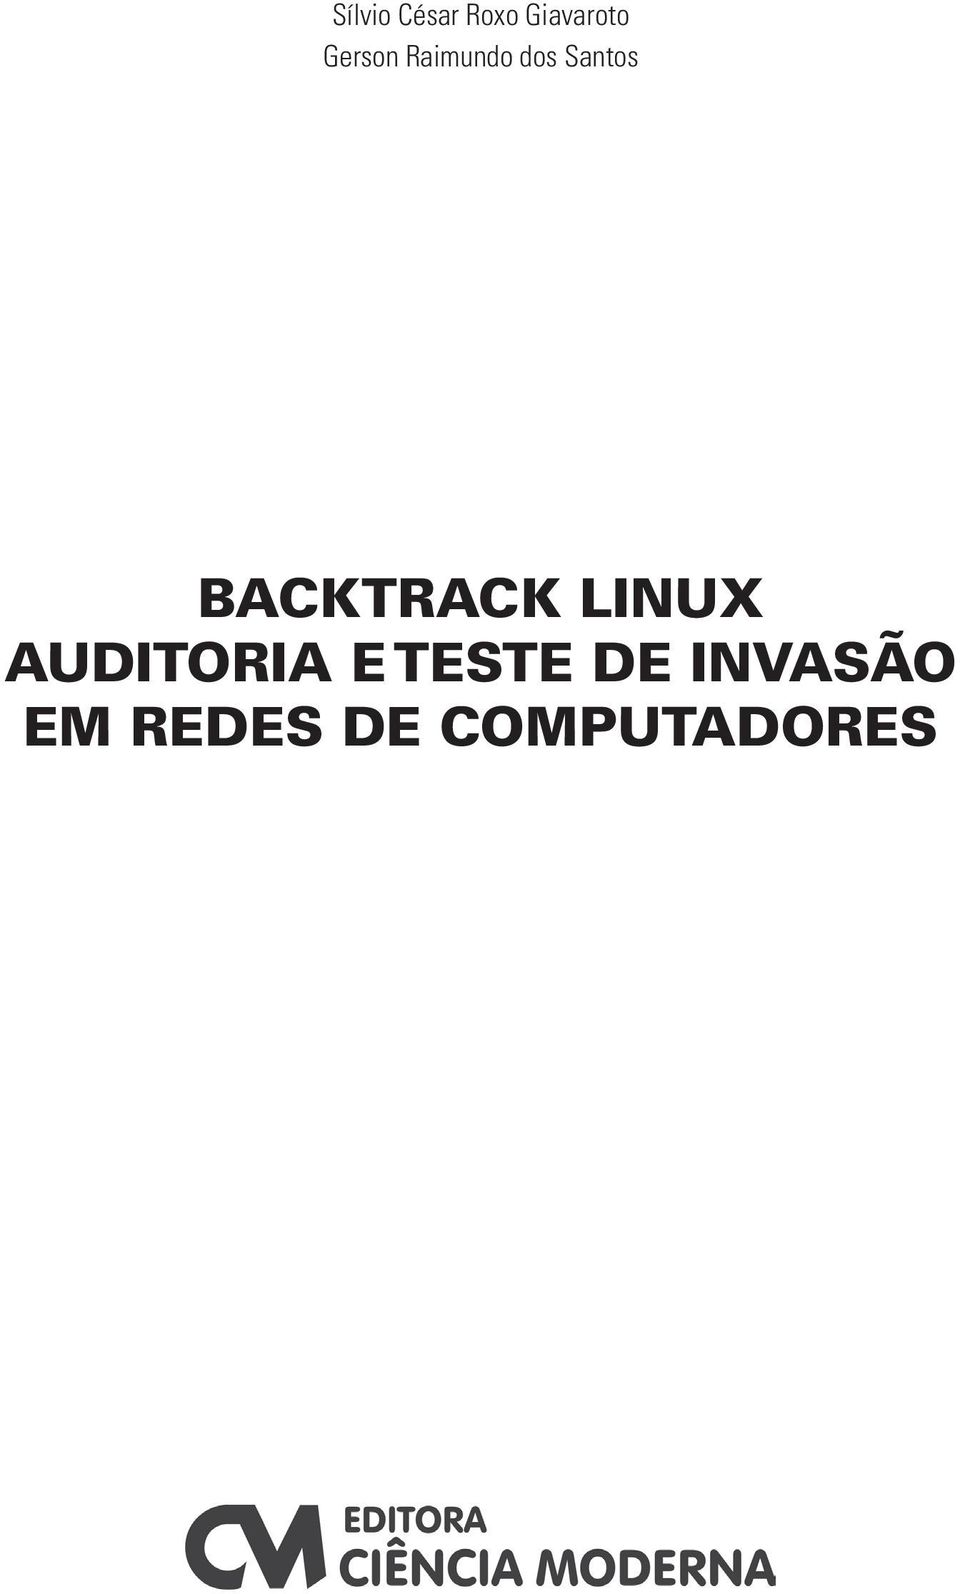 BACKTRACK LINUX AUDITORIA E